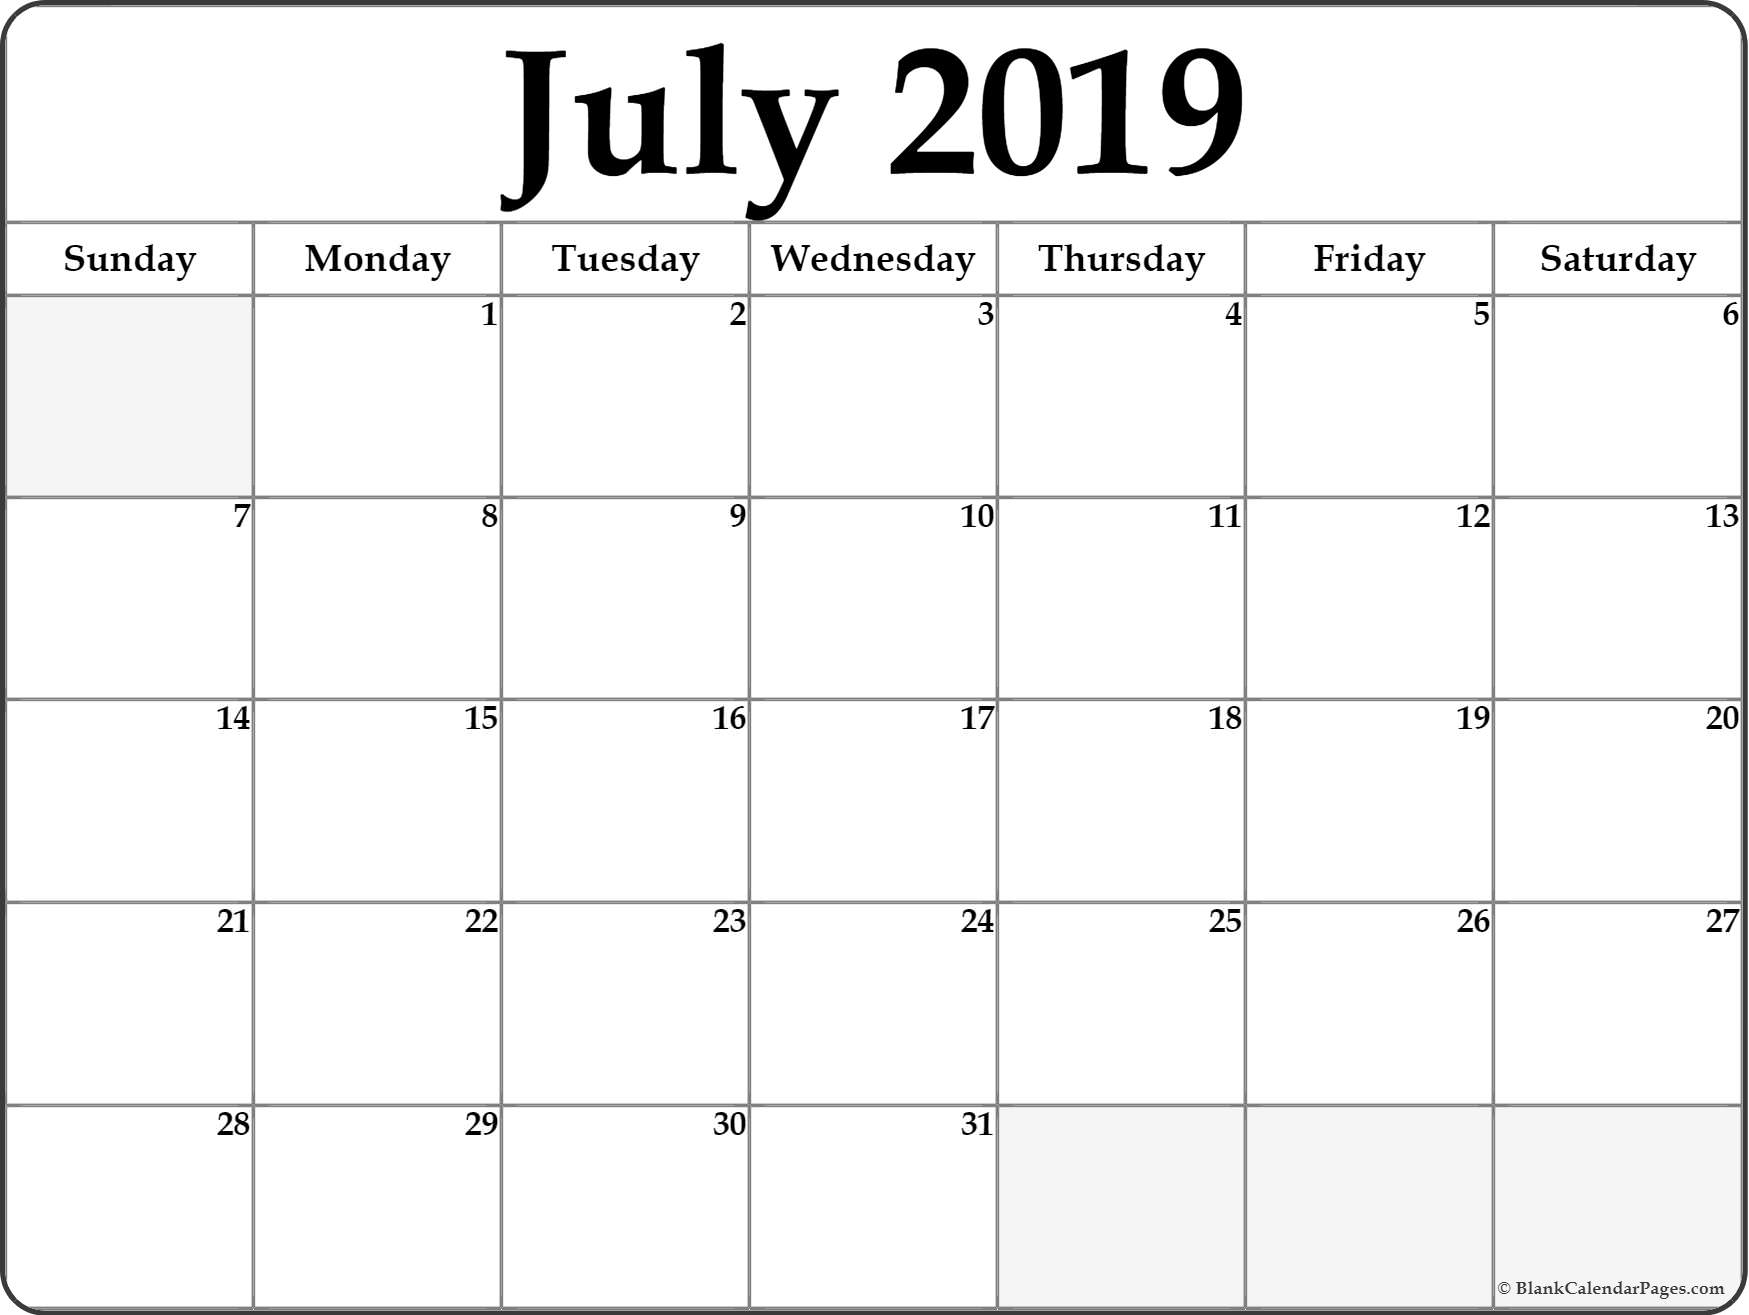 July 2019 Calendar | Free Printable Monthly Calendars with Free At A Glance Editable Calendar July 2019-June 2020